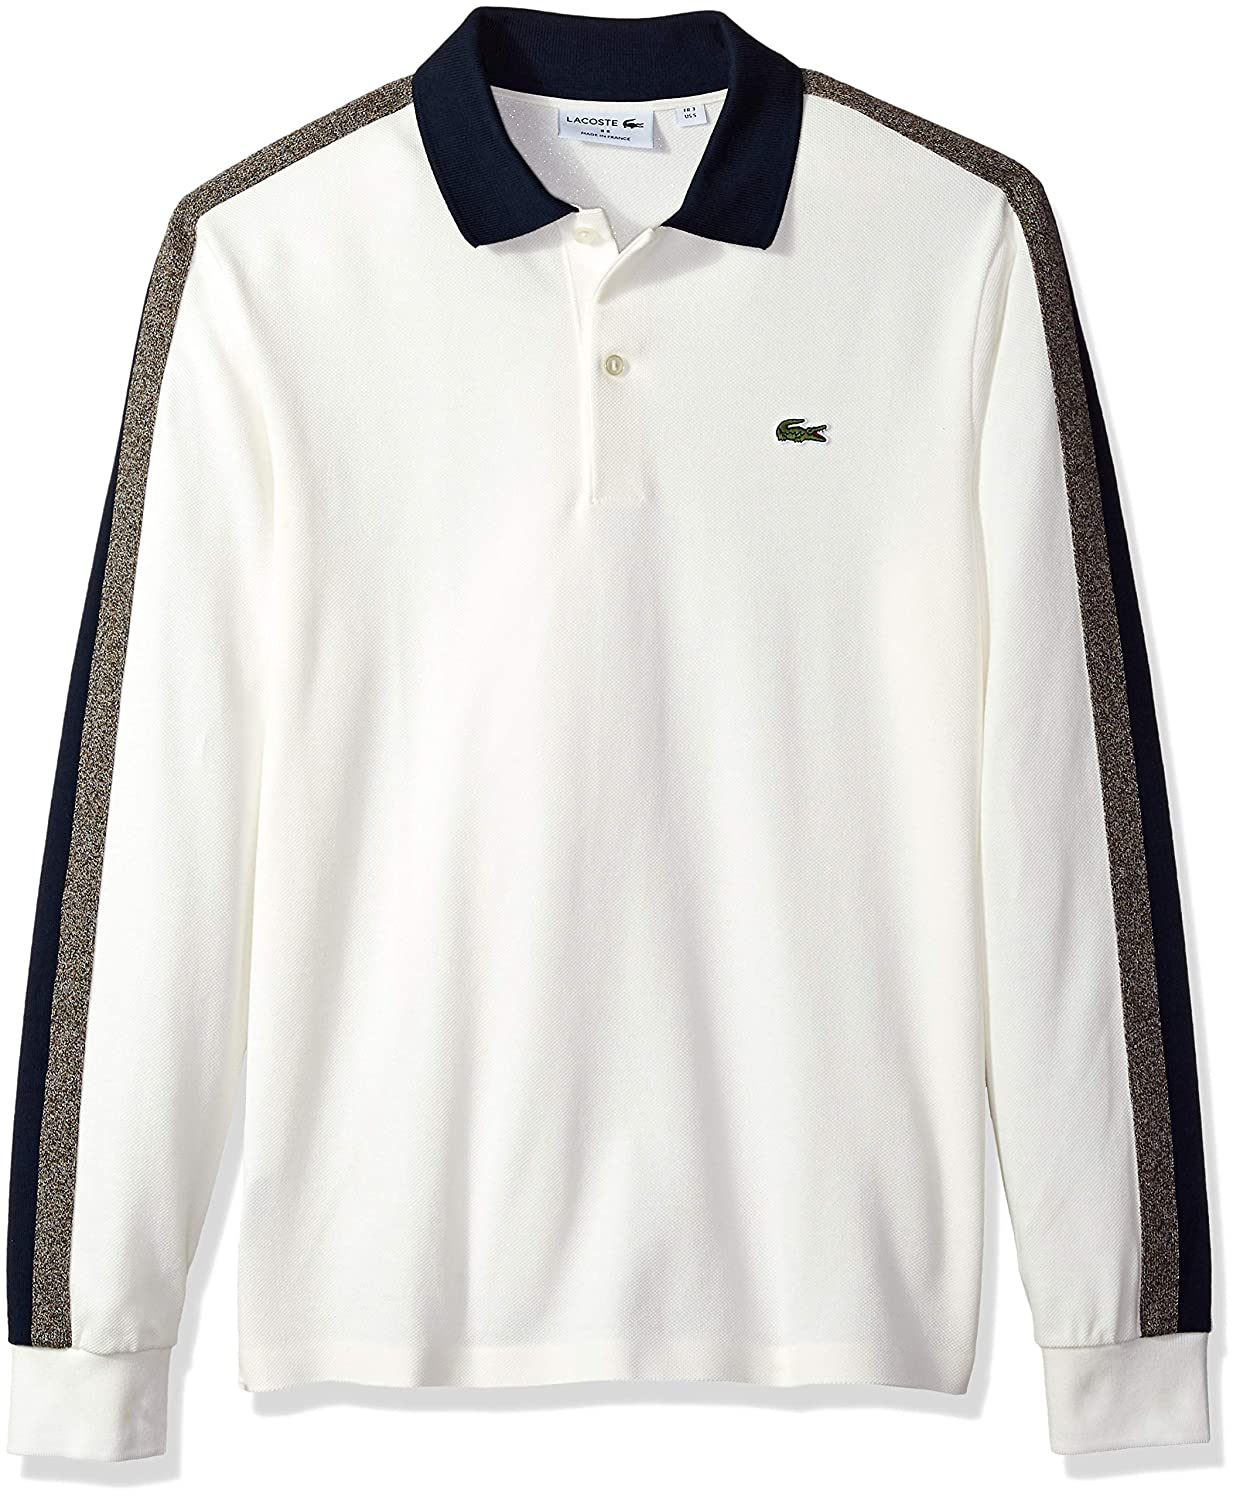 fbbd44d8d Lacoste Men s Long Sleeve Reg Fit Made in France Pique Polo at Amazon Men s  Clothing store